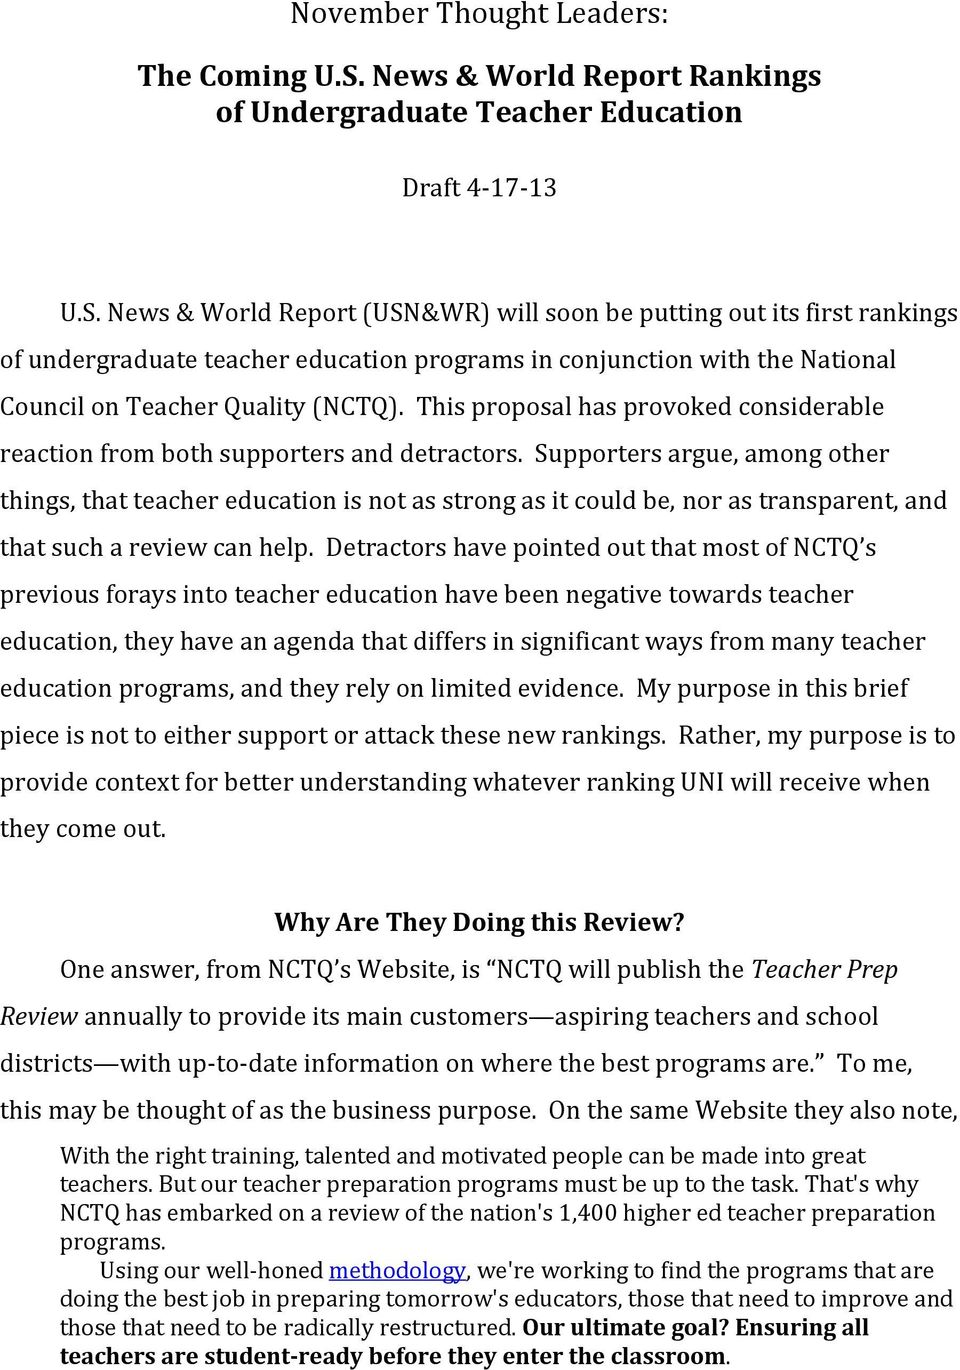 News & World Report (USN&WR) will soon be putting out its first rankings of undergraduate teacher education programs in conjunction with the National Council on Teacher Quality (NCTQ).